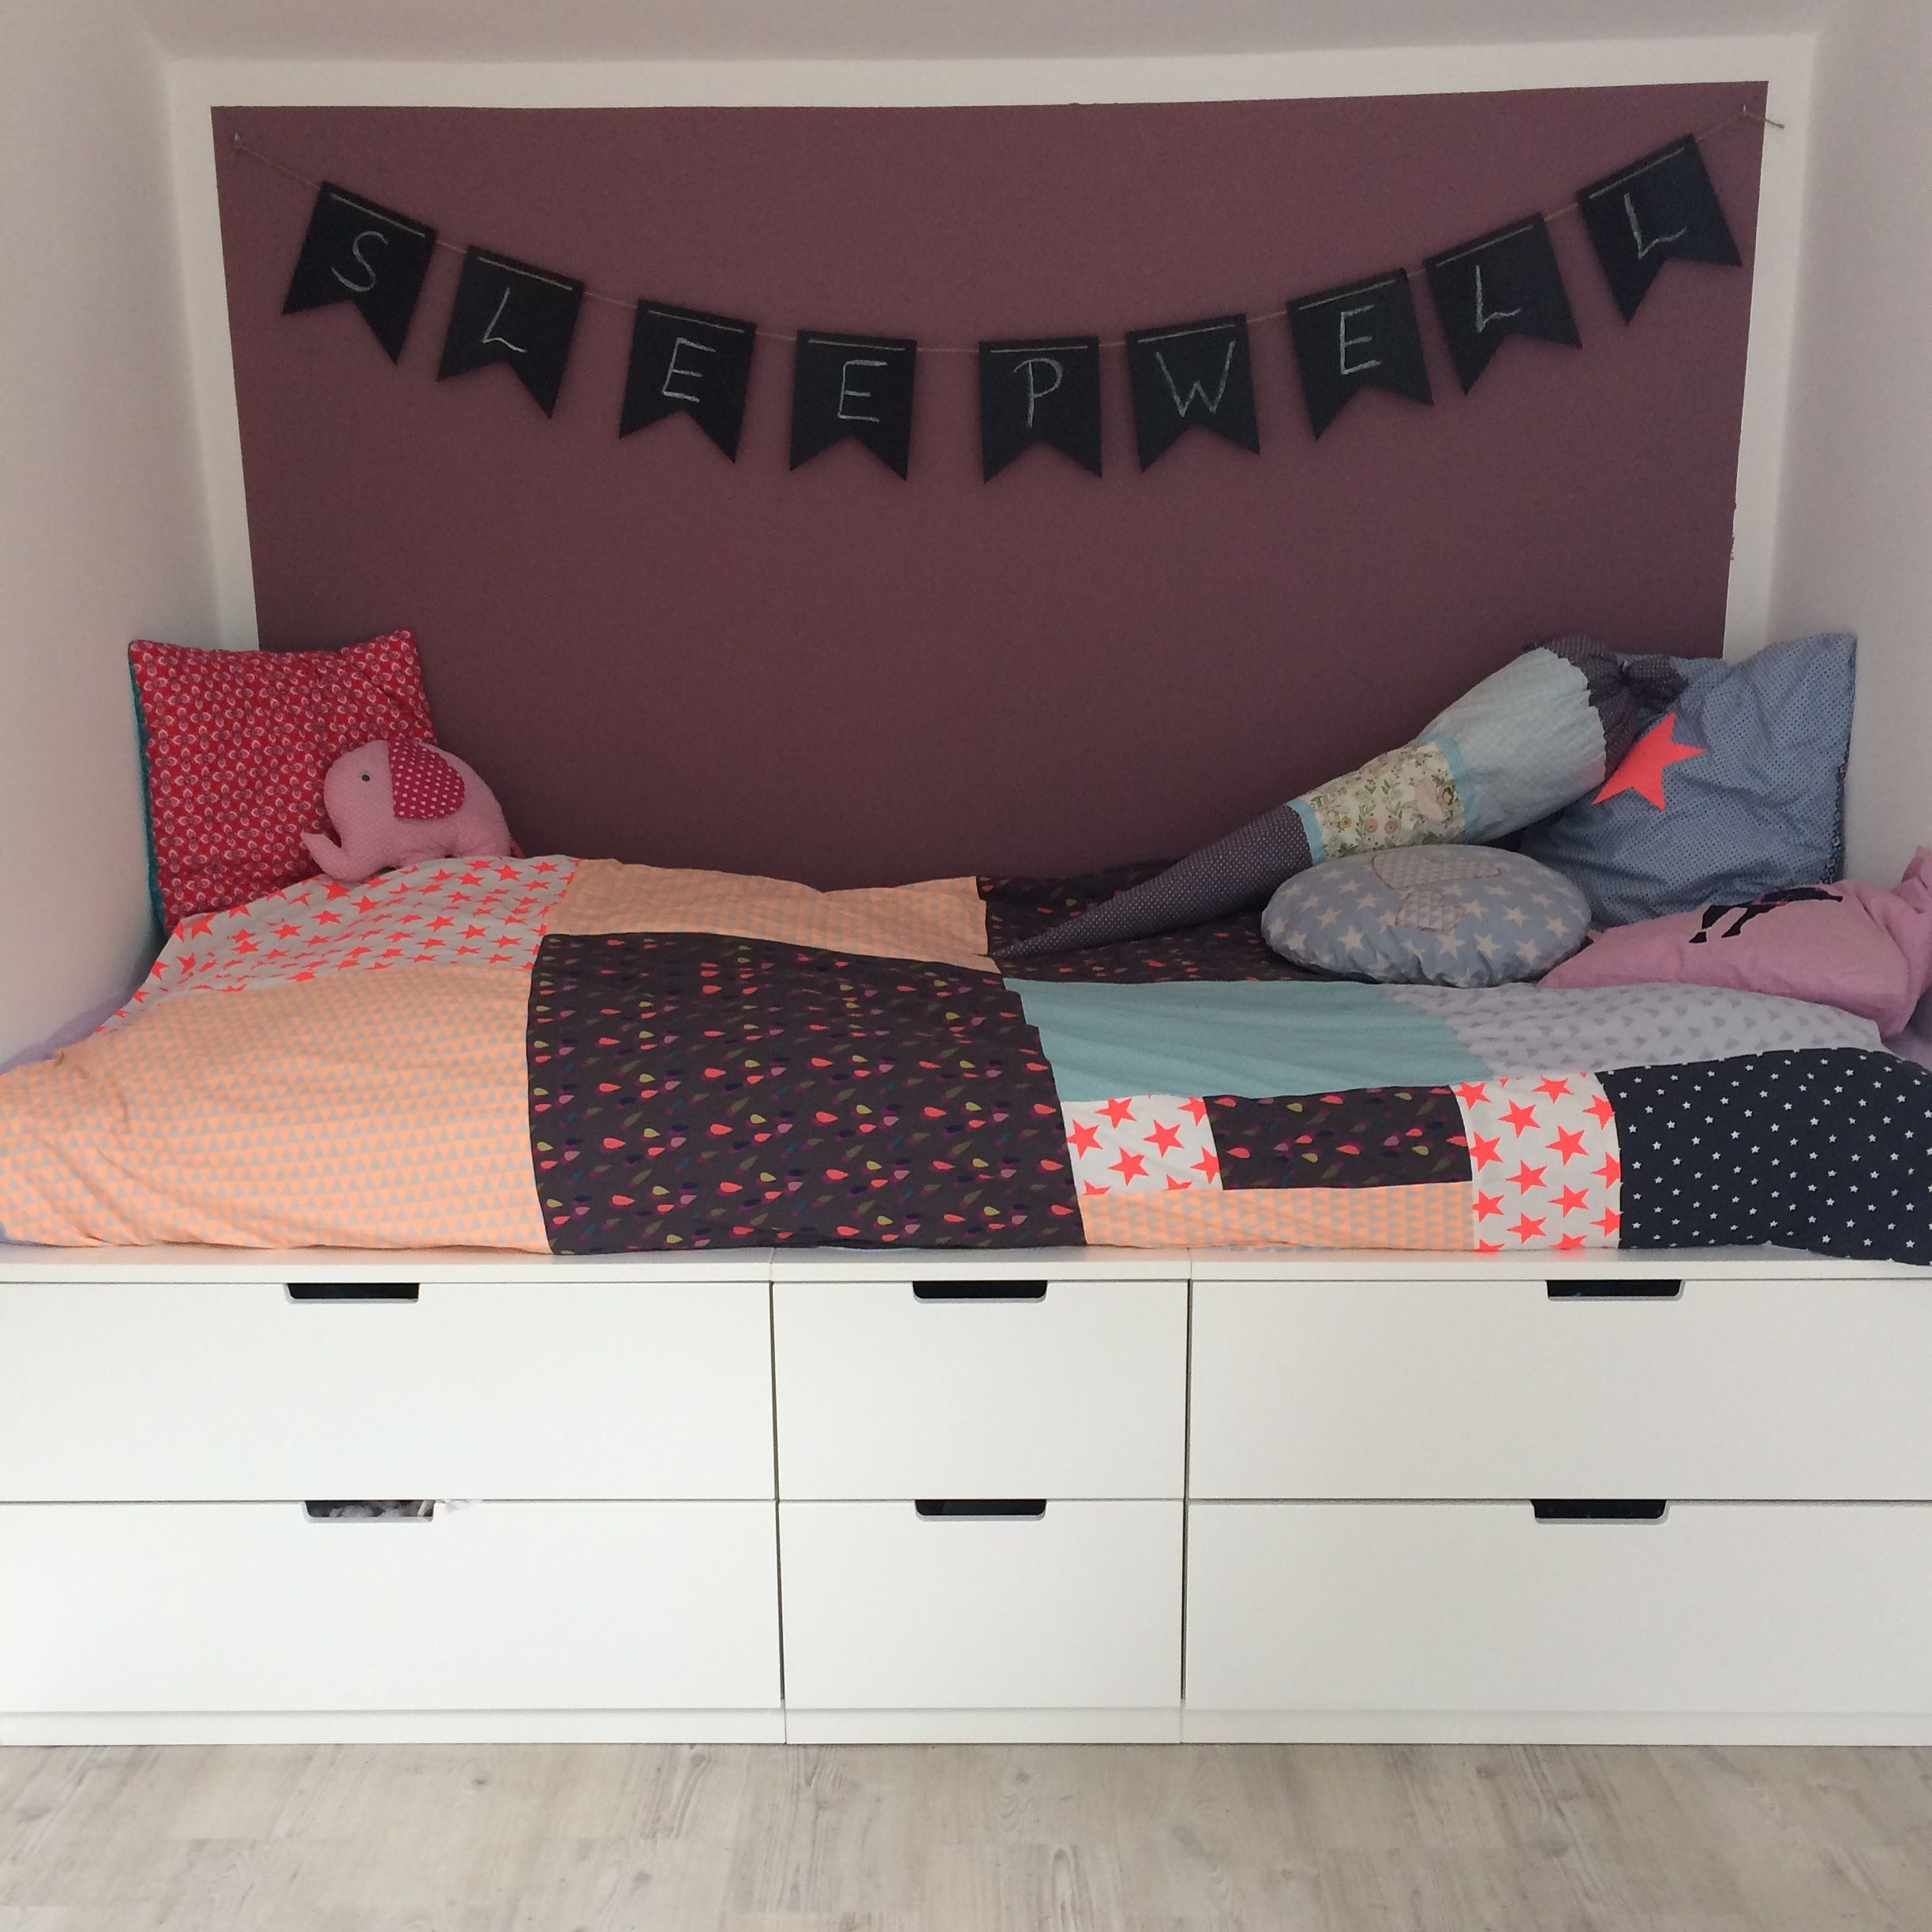 bett auf nordli kommoden ikeahacks kinderzimmer. Black Bedroom Furniture Sets. Home Design Ideas